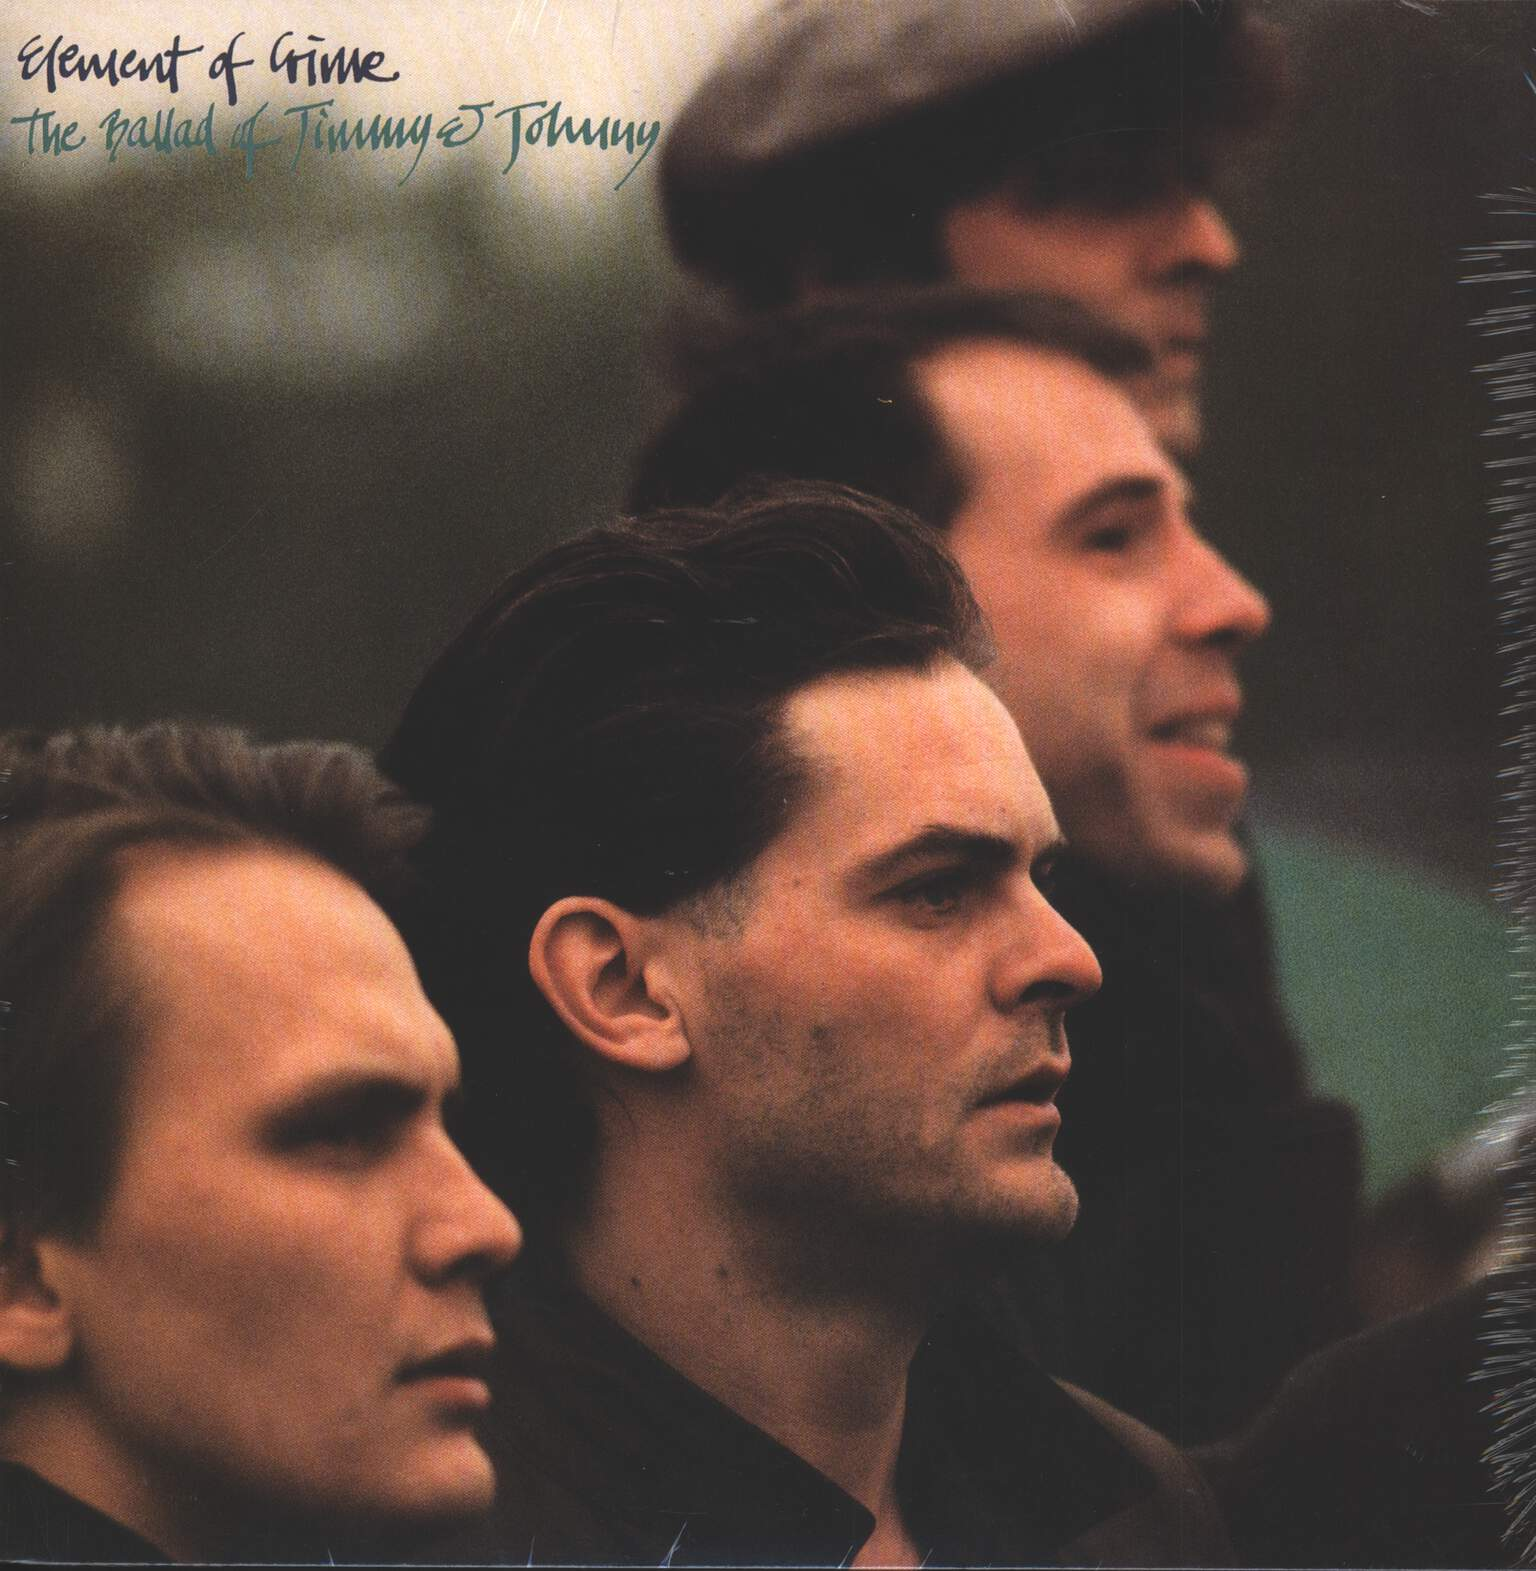 Element Of Crime: The Ballad Of Jimmy & Johnny, 1×LP (Vinyl)